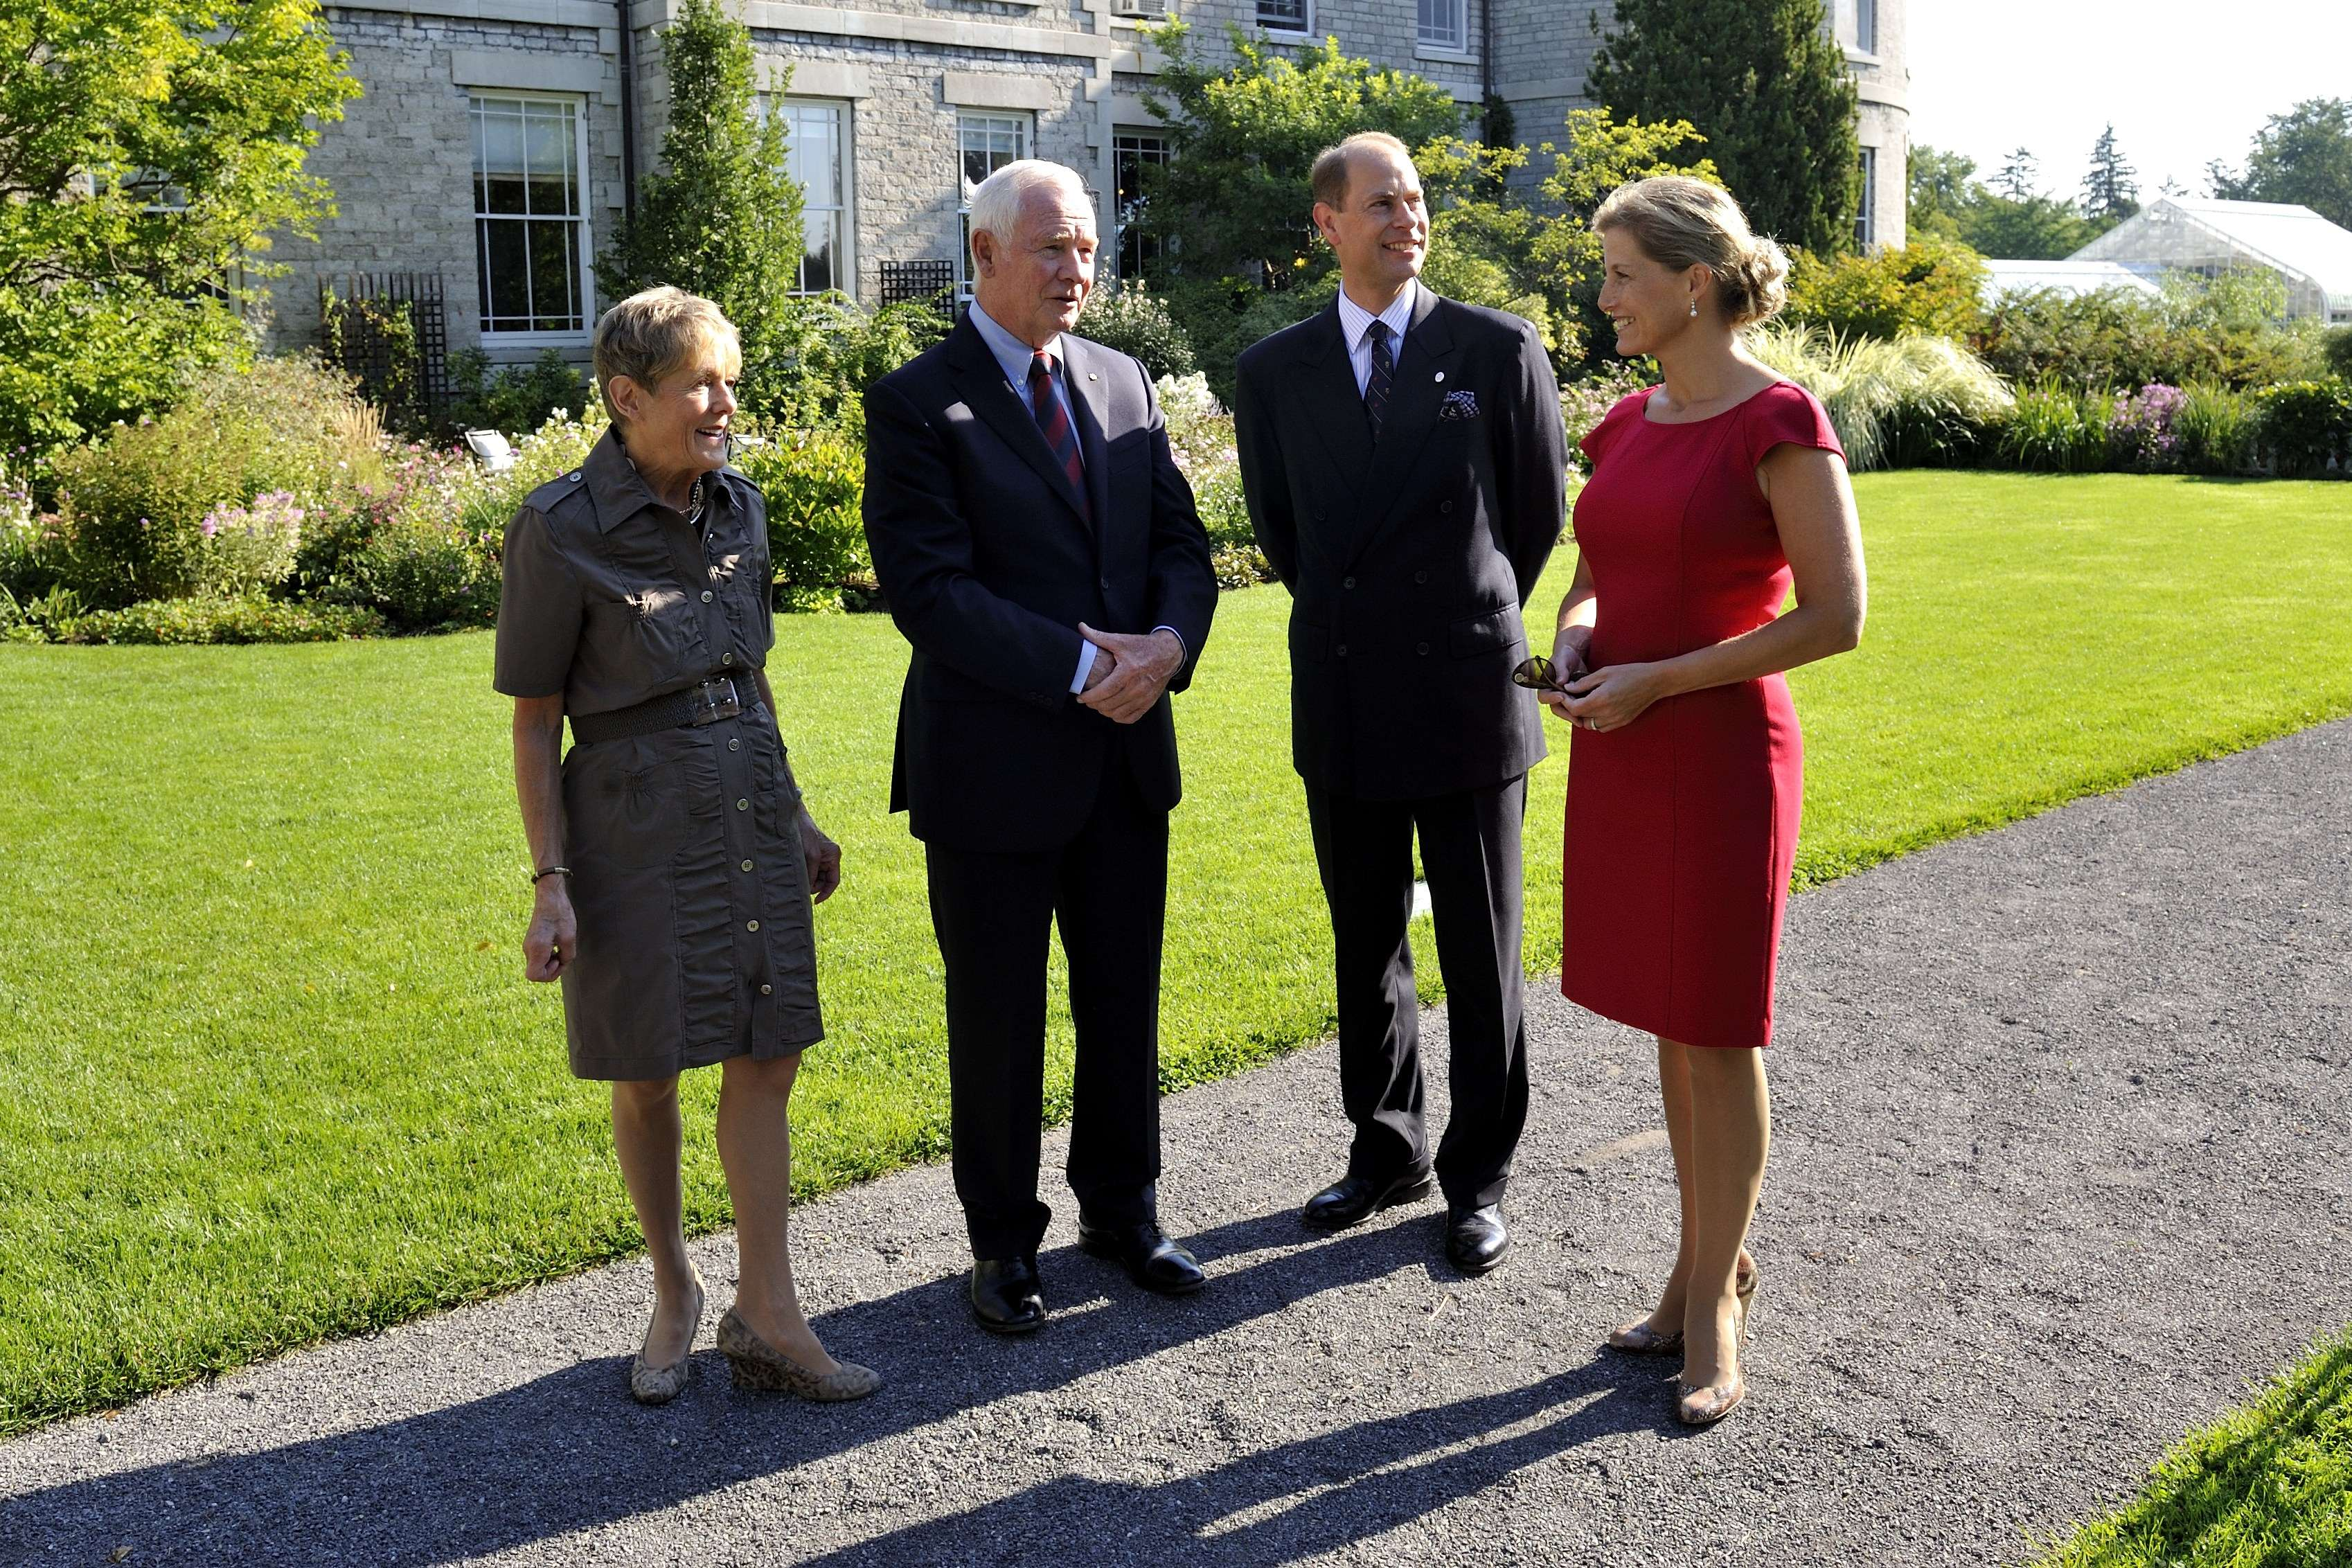 Their Excellencies the Right Honourable David Johnston, Governor General of Canada, and Mrs. Sharon Johnston hosted Their Royal Highnesses at Rideau Hall during their stay in the national capital, on September 11 and 12, 2012.